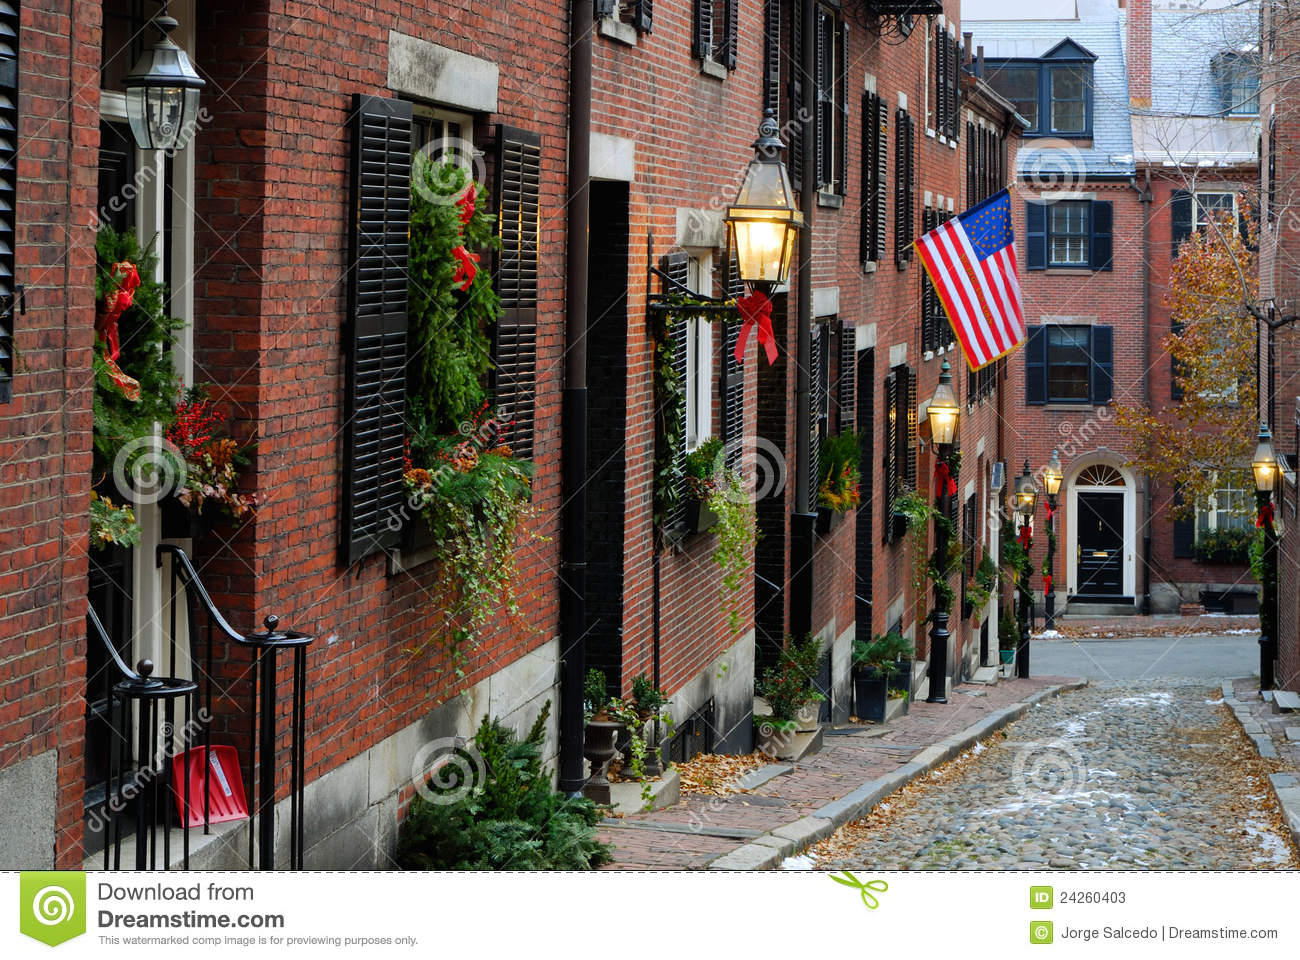 Acorn Street around Christmas in Boston, Massachusetts.